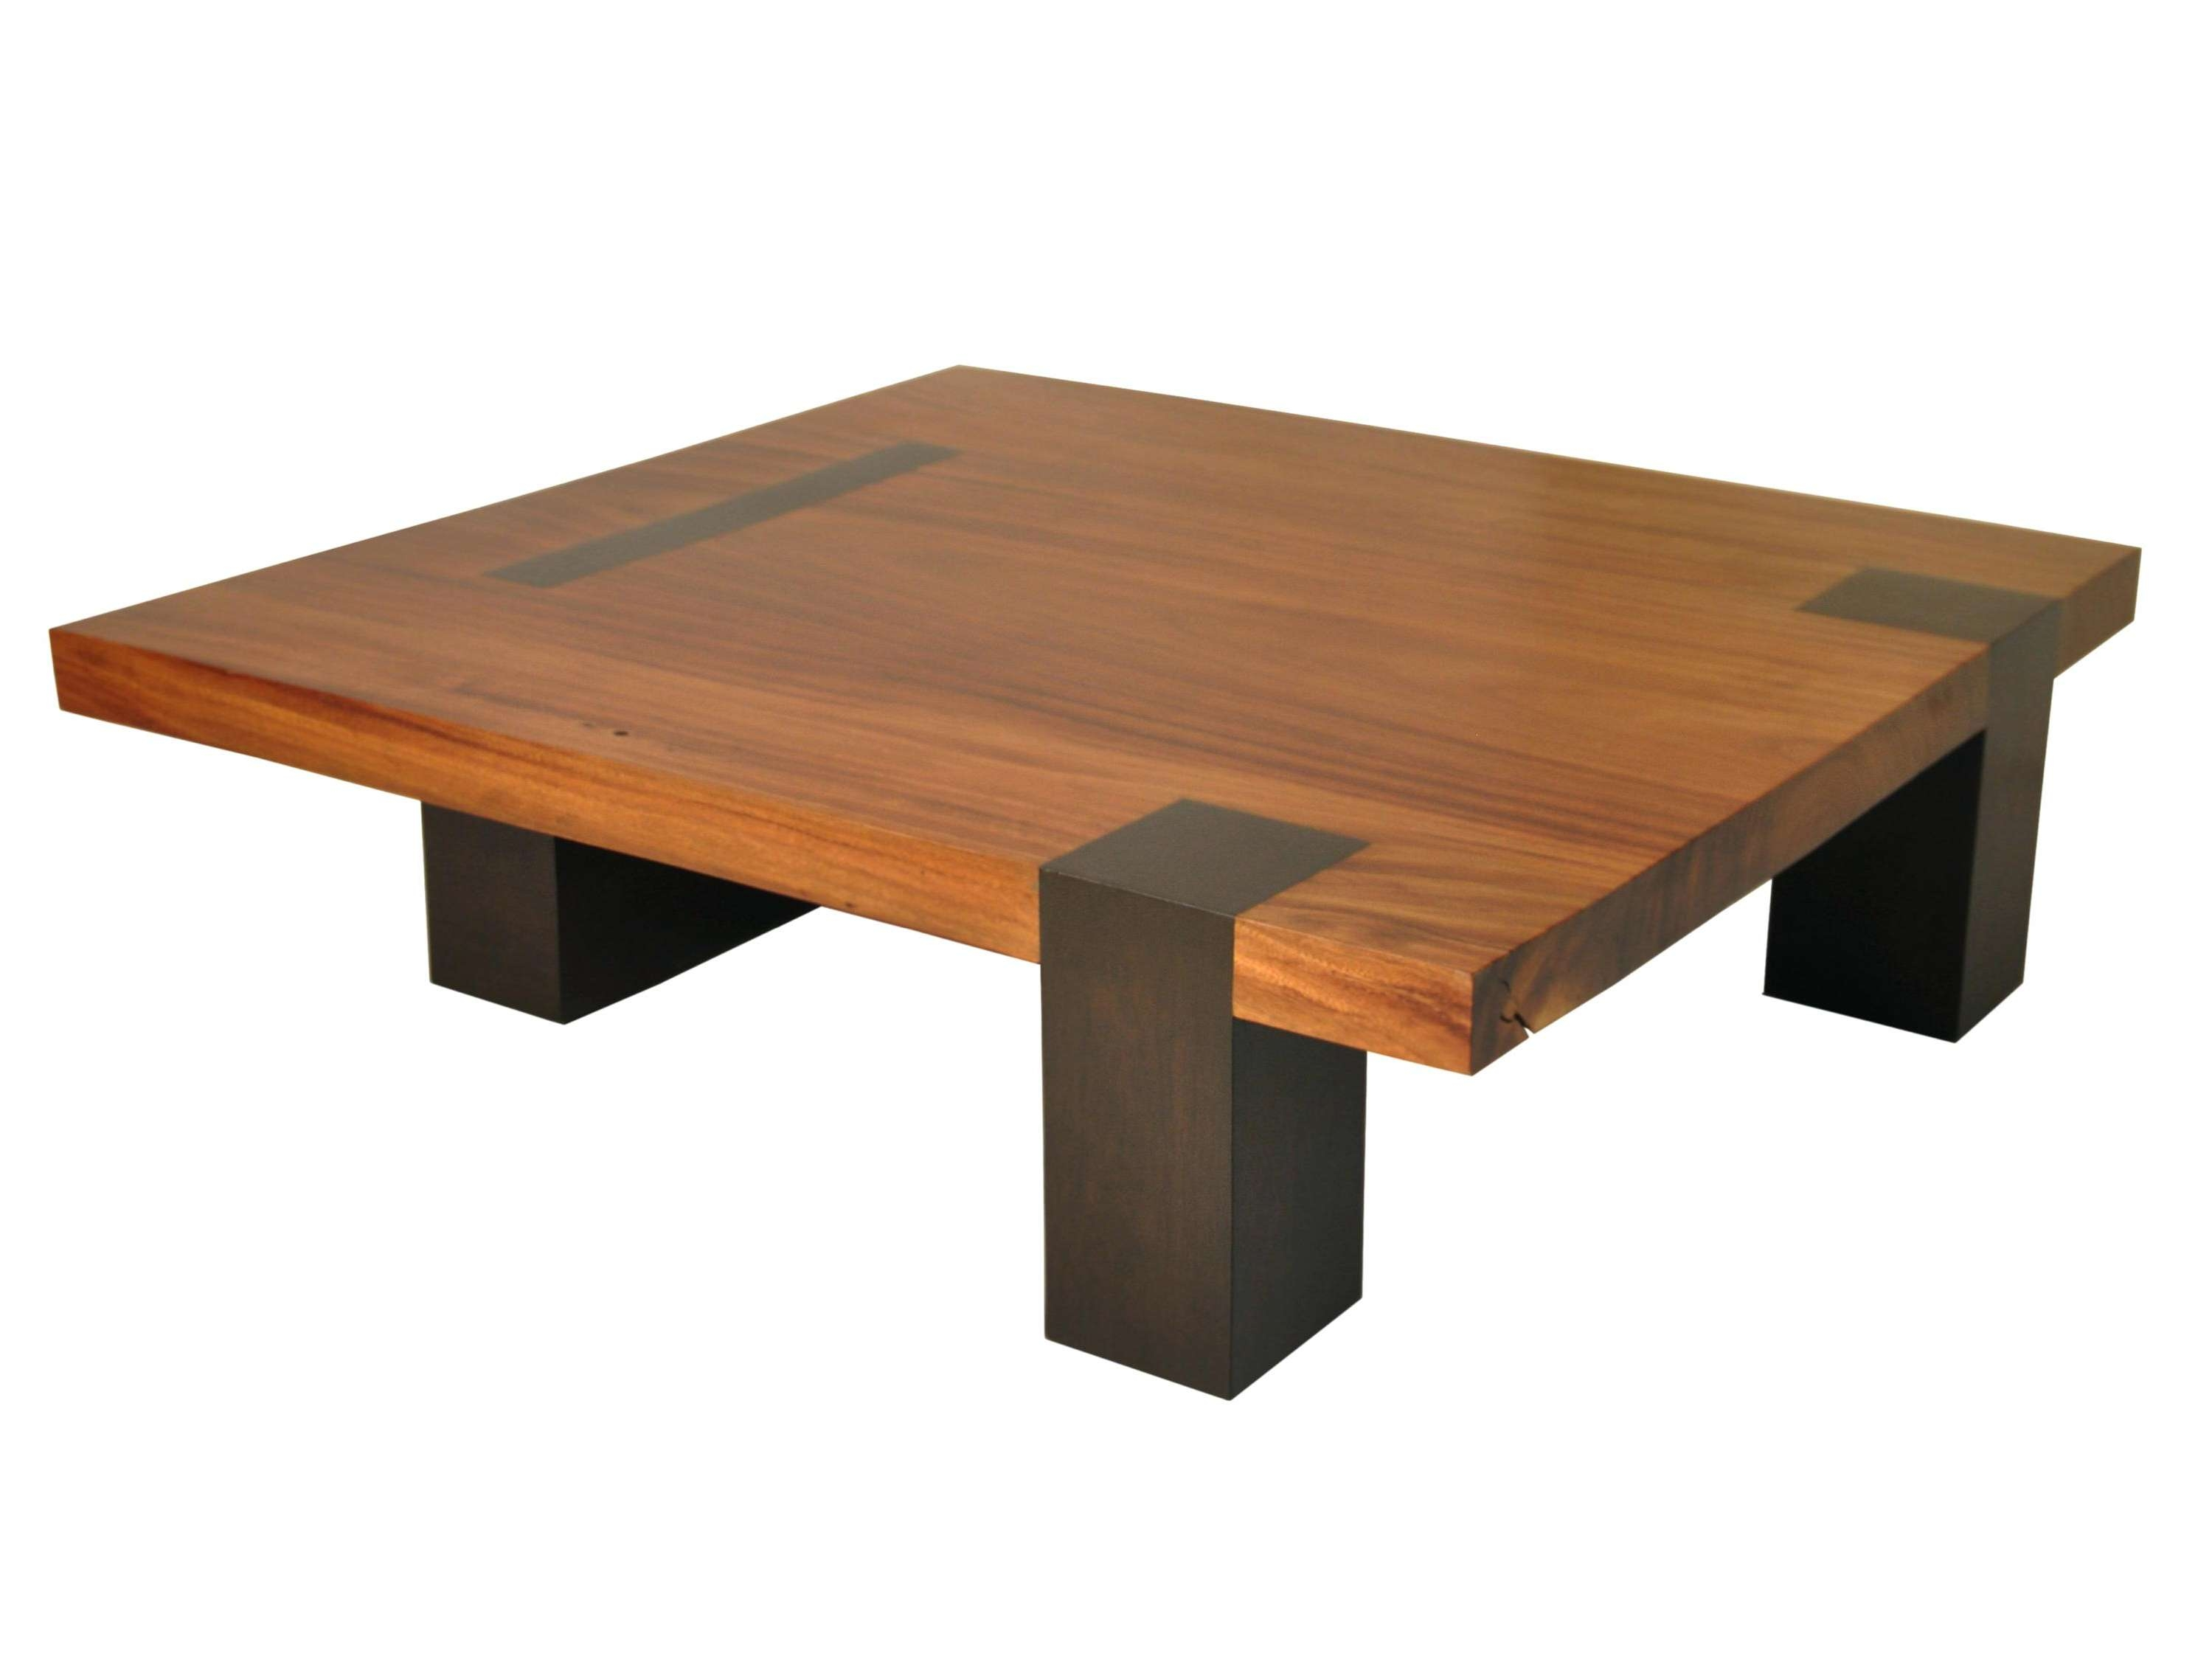 2018 Large Coffee Tables With Storage Within Coffee Table : Square Coffee Table With Storage Coffee Tables (View 14 of 20)